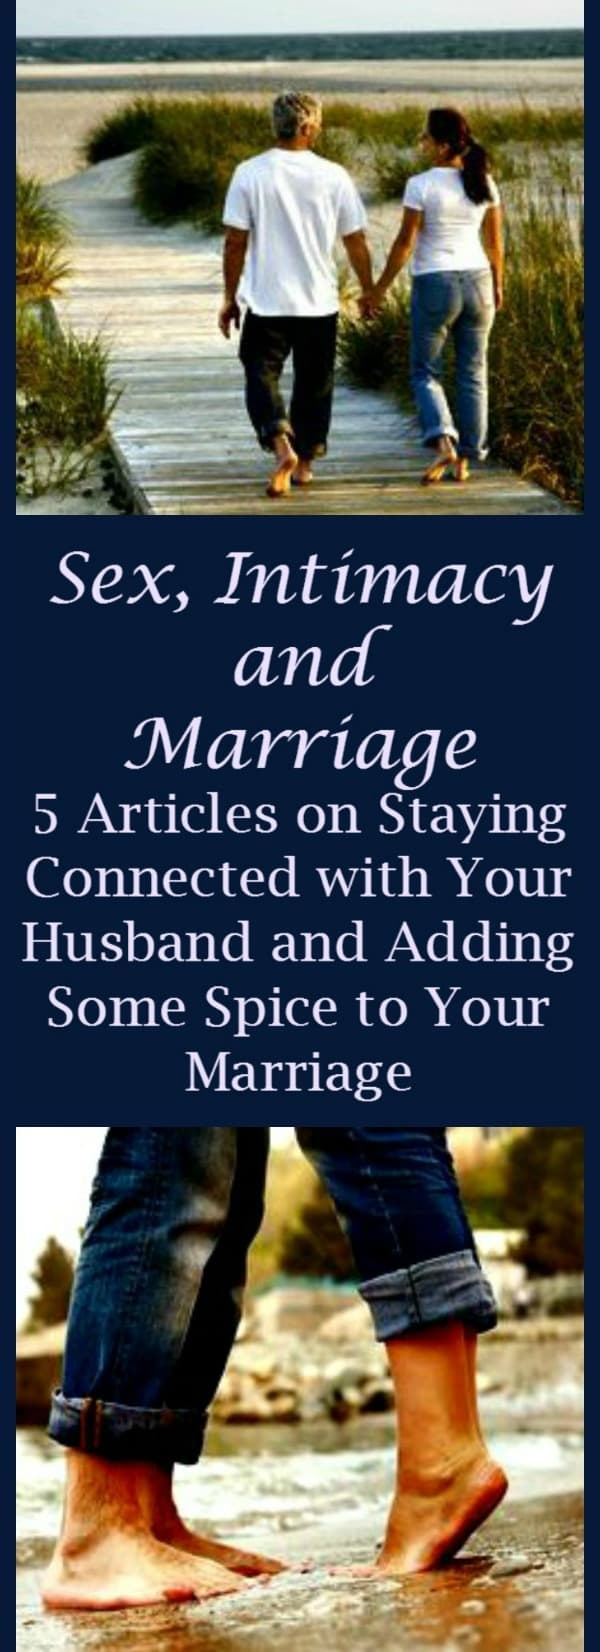 Sex, Intimacy and Marriage - 5 ways to increase intimacy and enjoy sex more in your marriage. Keeping your marriage fun and hot takes some time and energy, but it's well worth the effort. Marriage tips, ideas, advice and encouragement | Christian marriage